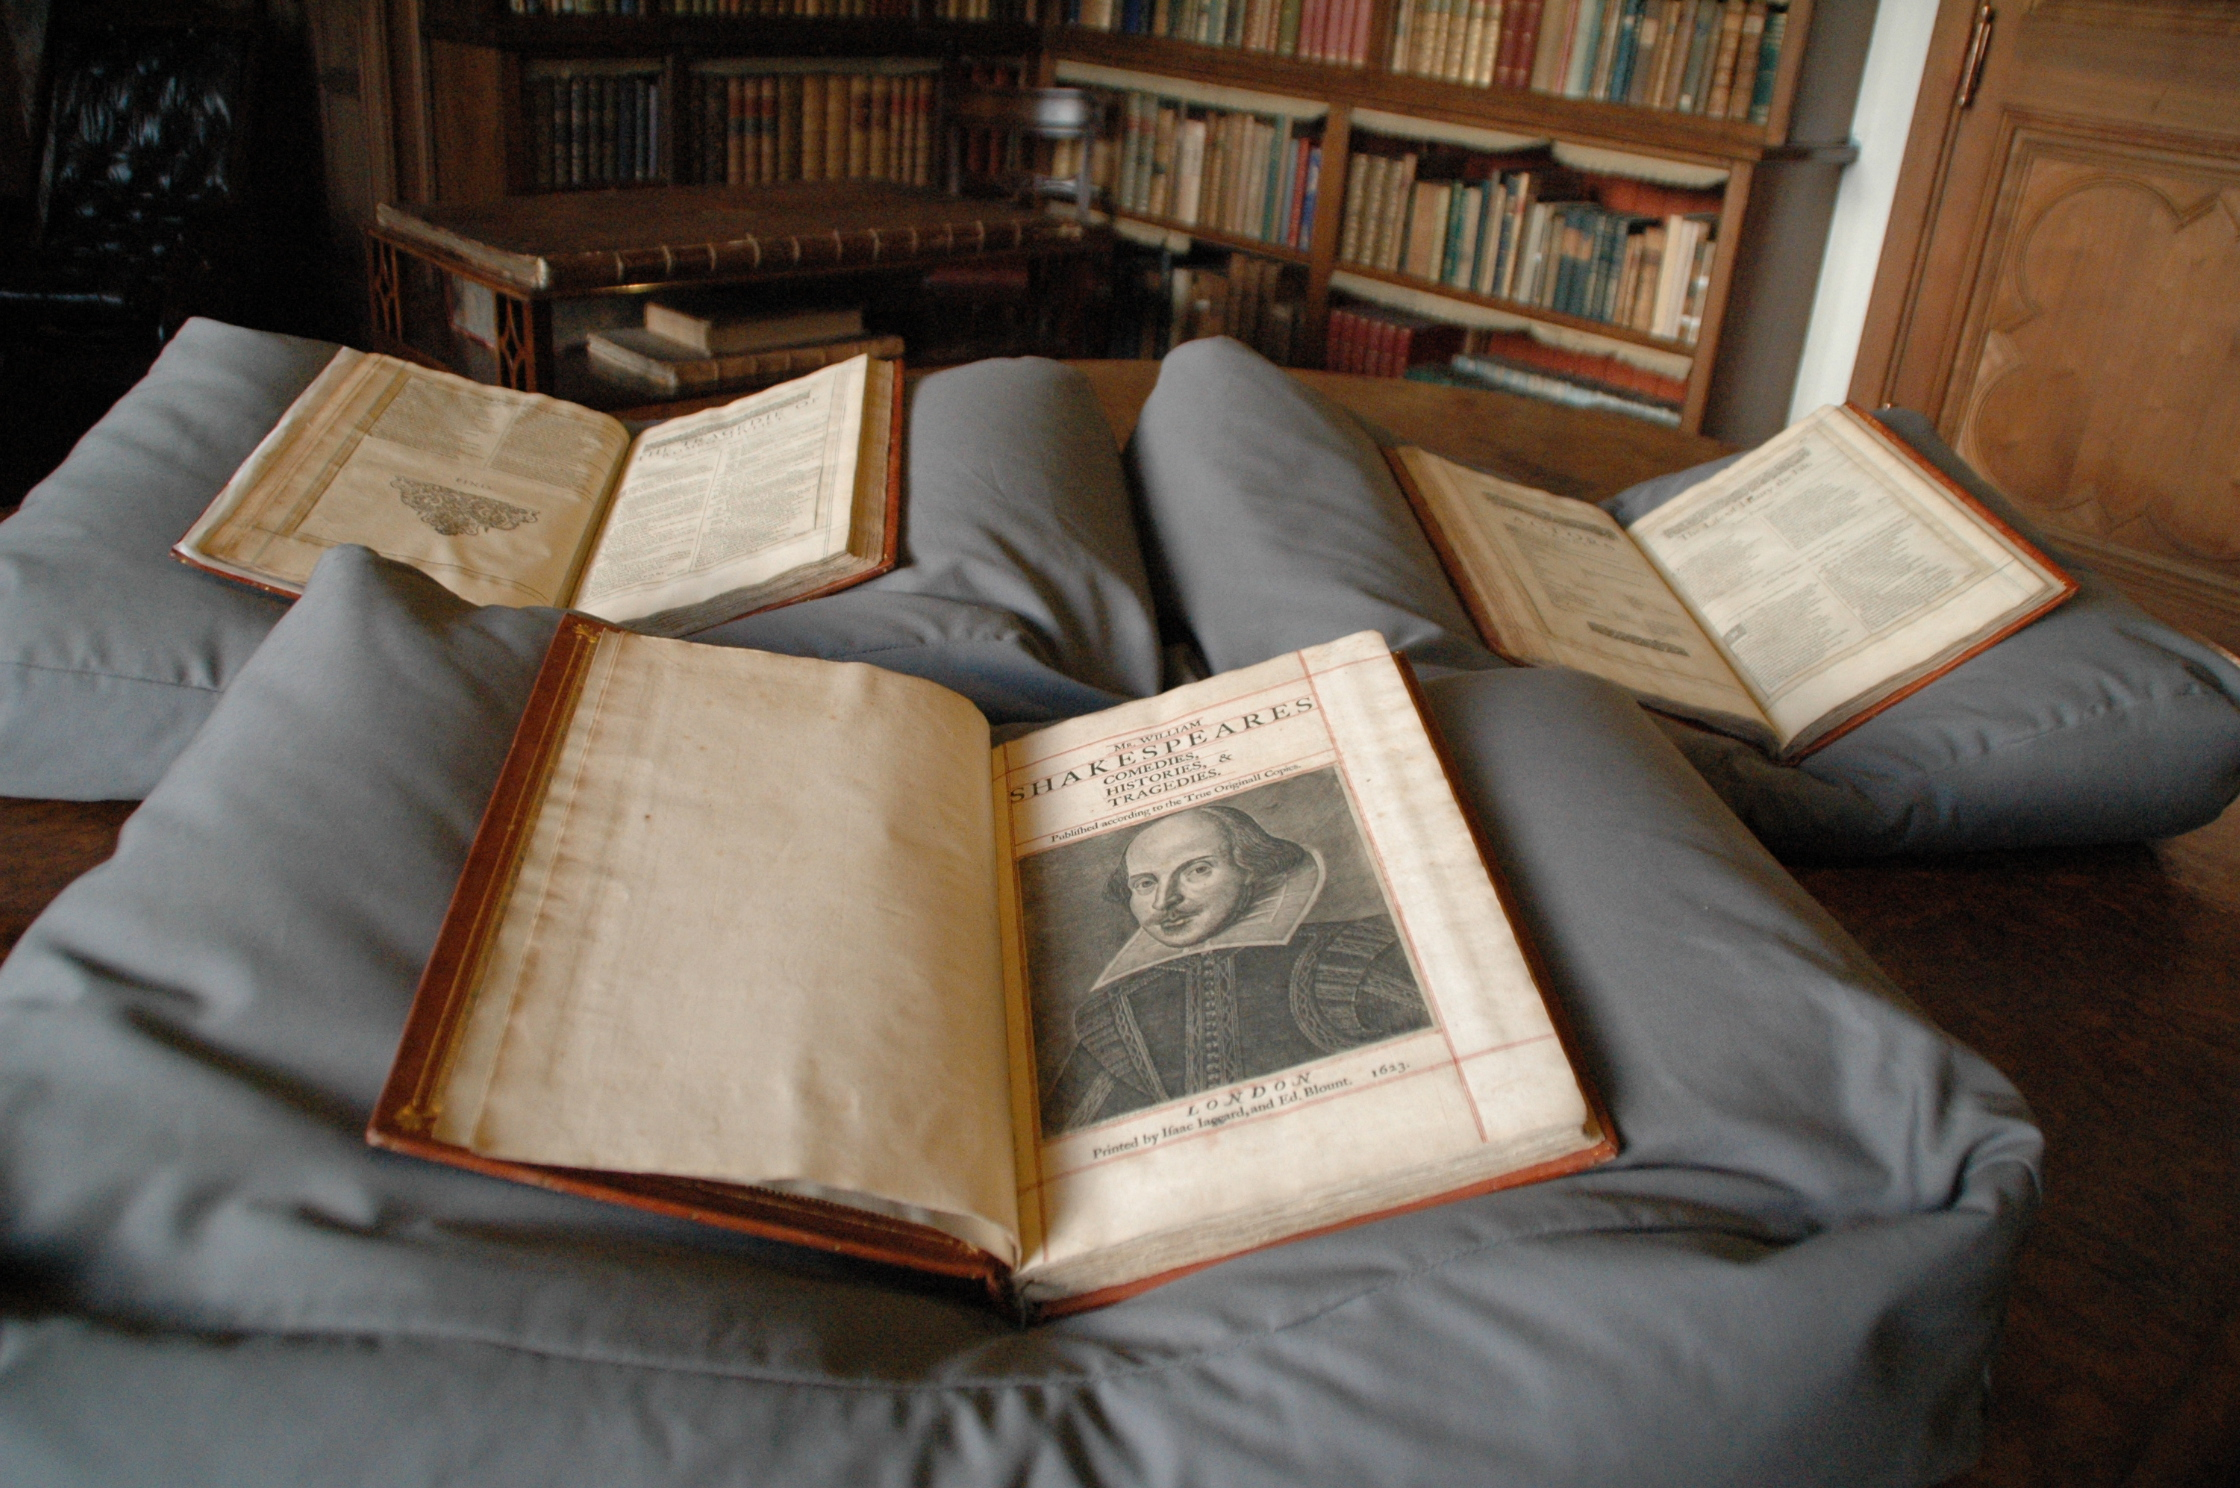 New Shakespeare First Folio discovered 400 years after his death